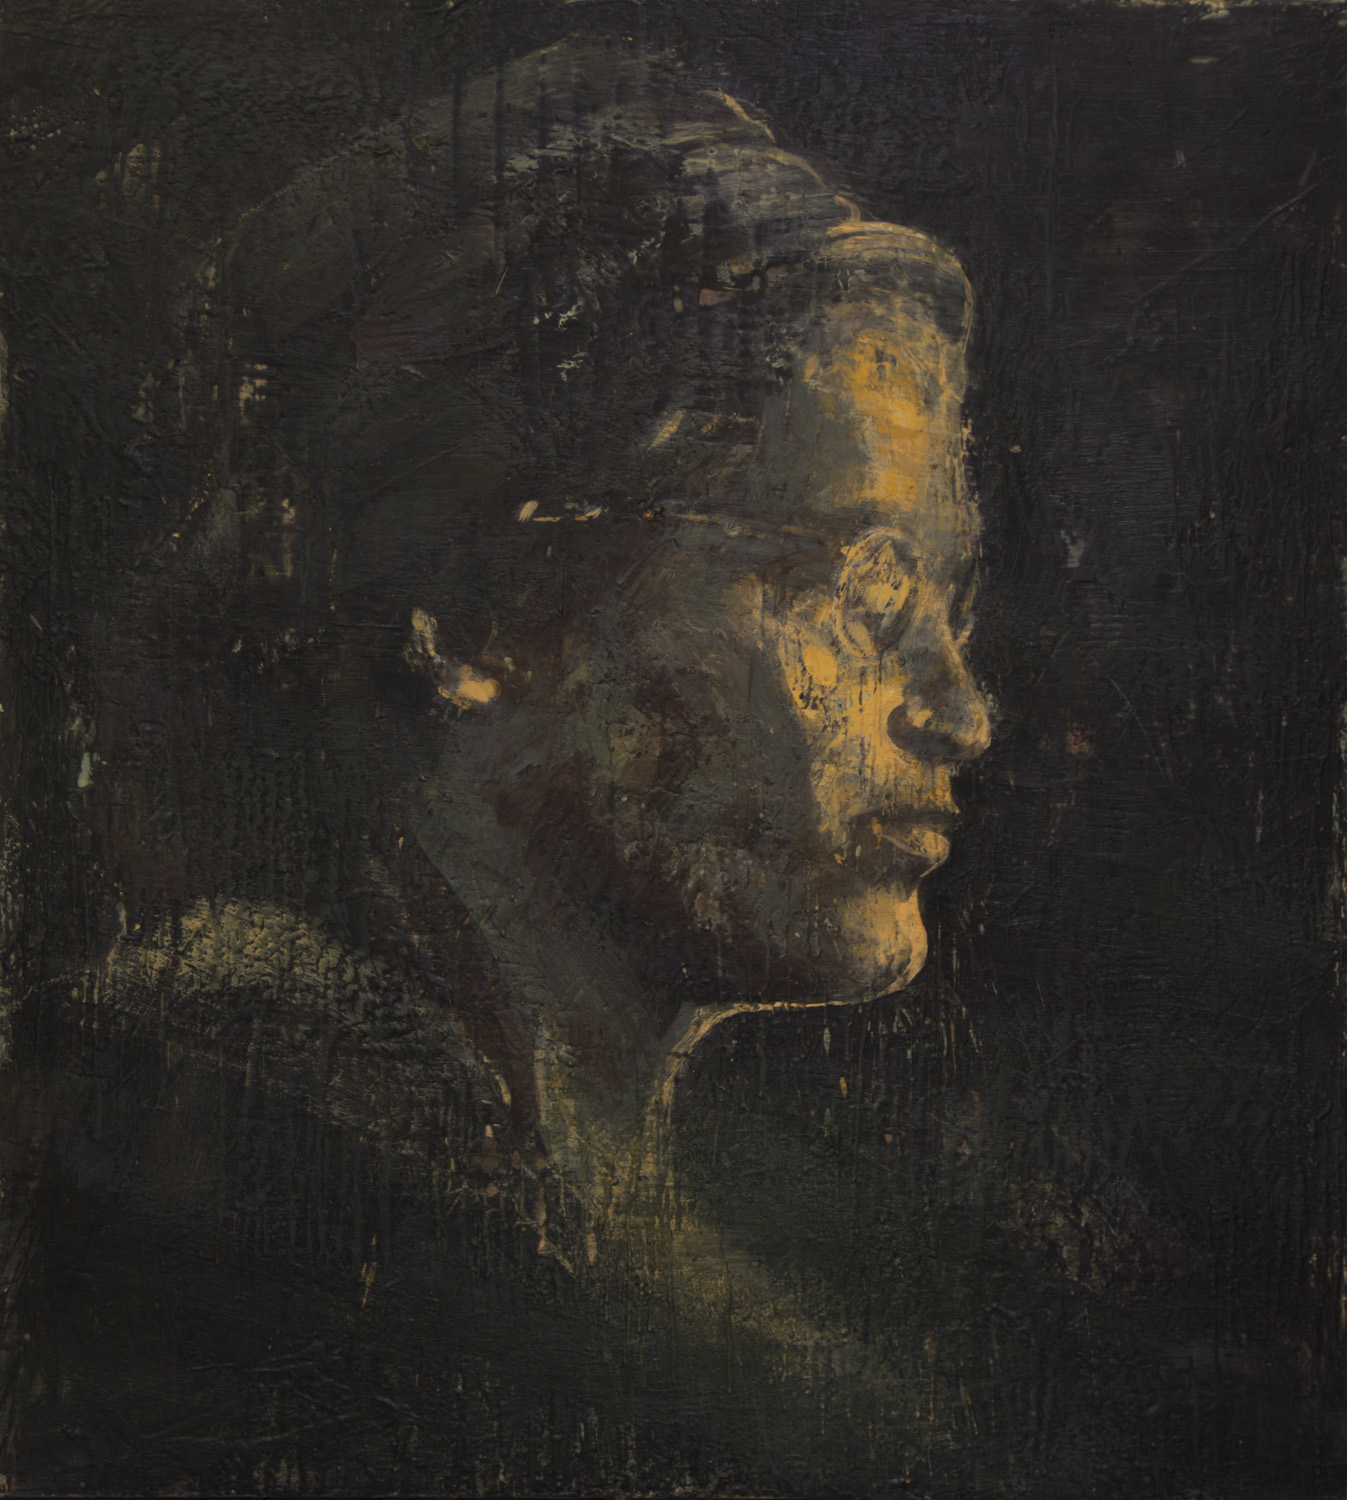 Rosa Parks, 2013-14, encaustic on canvas, 60 x 54 inches